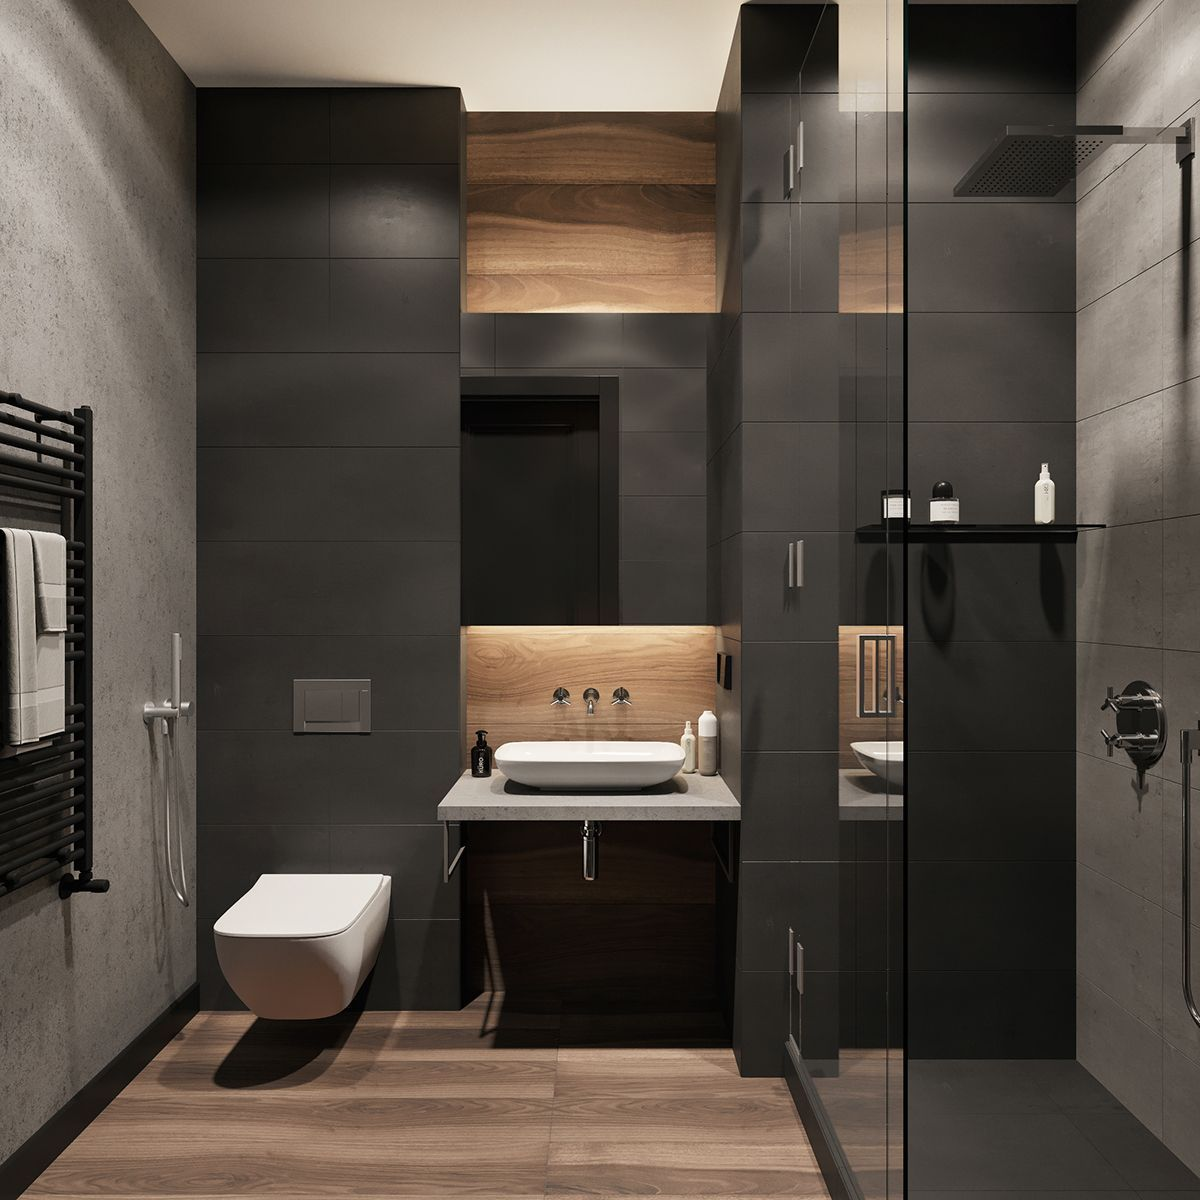 Modern Home Interiors And Design Ideas From The Best In Condos Penthouses And Architecture P Industrial Bathroom Design Lavatory Design Bathroom Design Small Modern home bathroom design